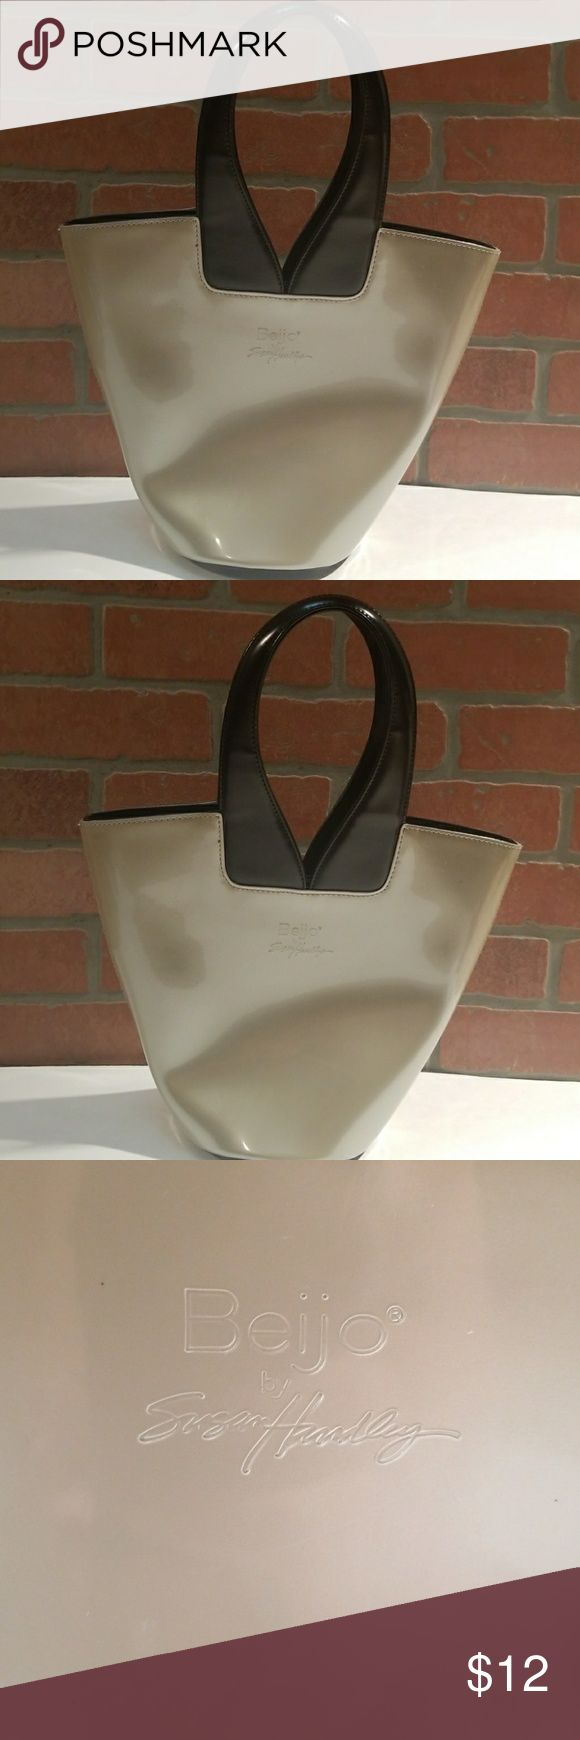 Beijo Handbag Creamy tan with Black Handles Gorgeous bag!! EUC with only a few spots to the back of the bag (Pictured). Interior is in new condition. Beijo Bags Satchels